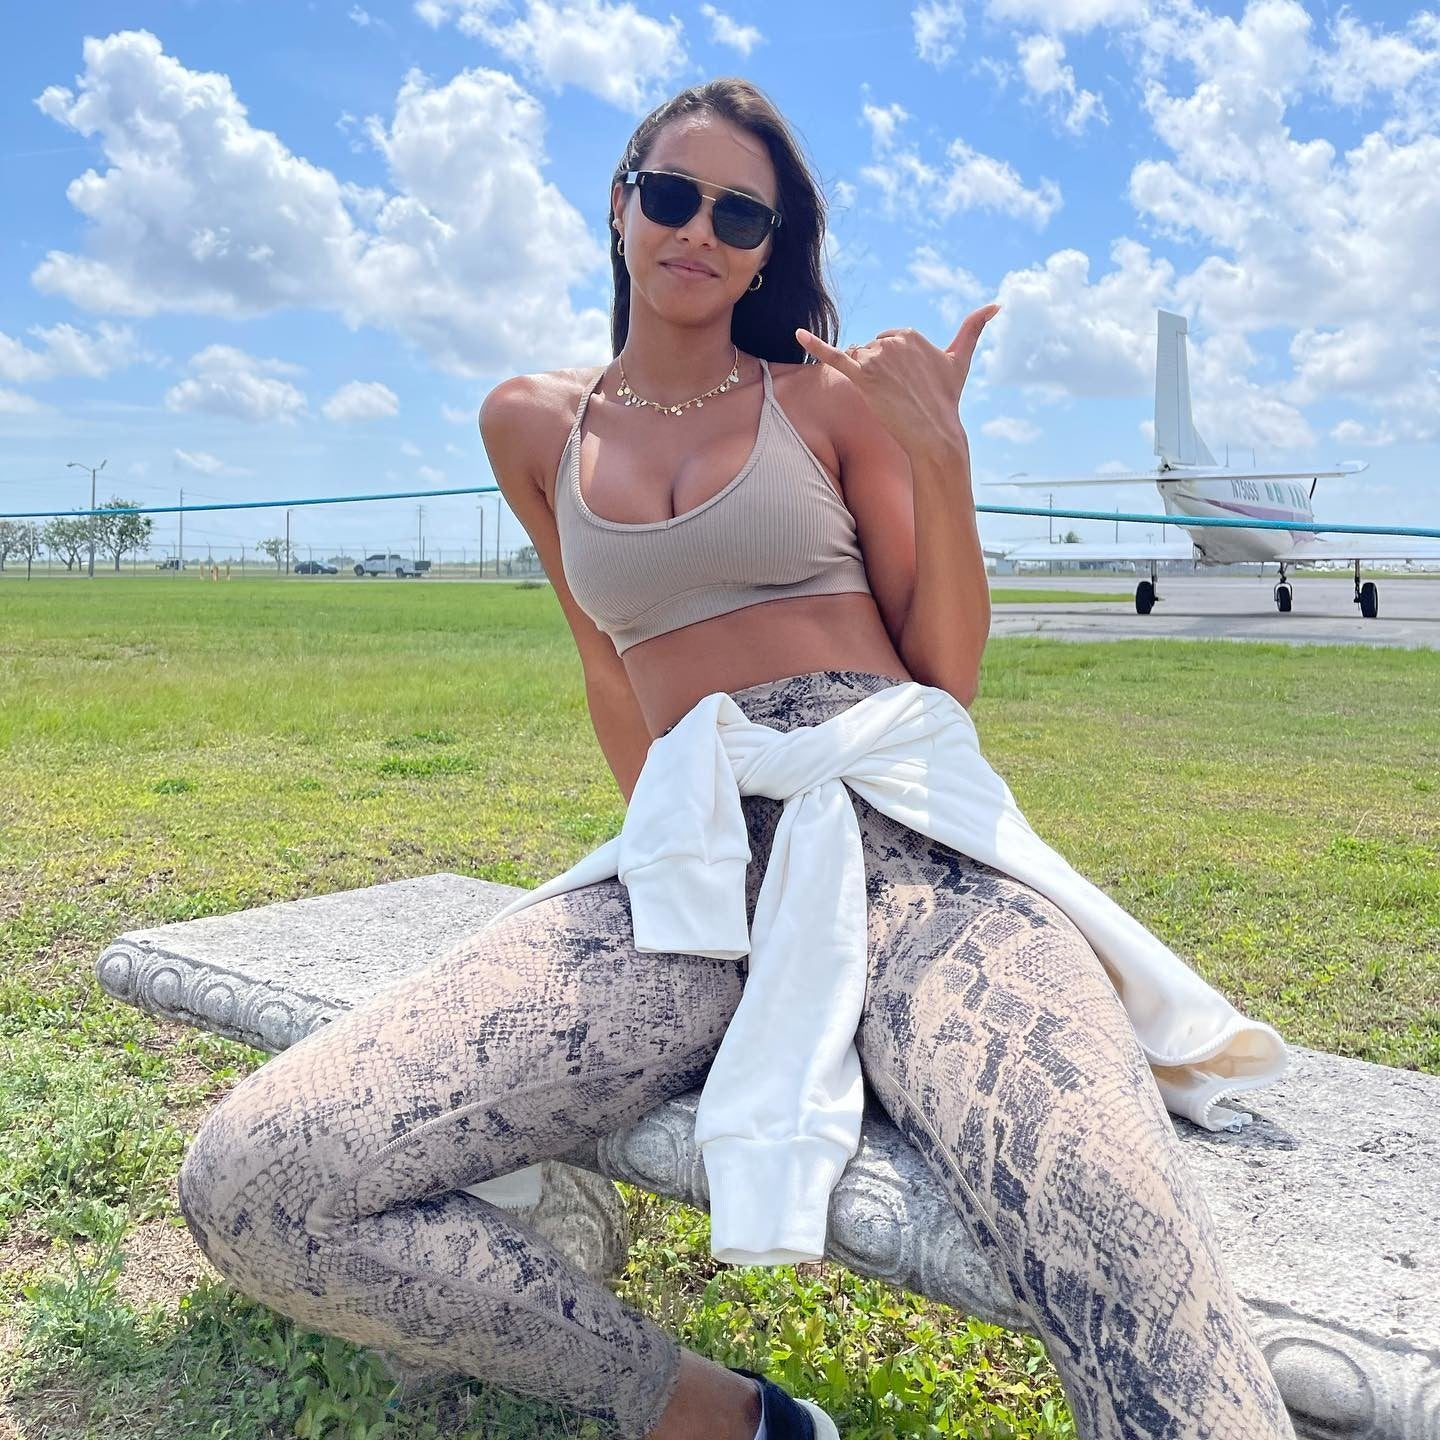 @laisribeiro wearing Gravel Snakeskin high-waisted leggings with a light brown sports bra and a white hoodie tied around her waist for a pre-skydiving picture.